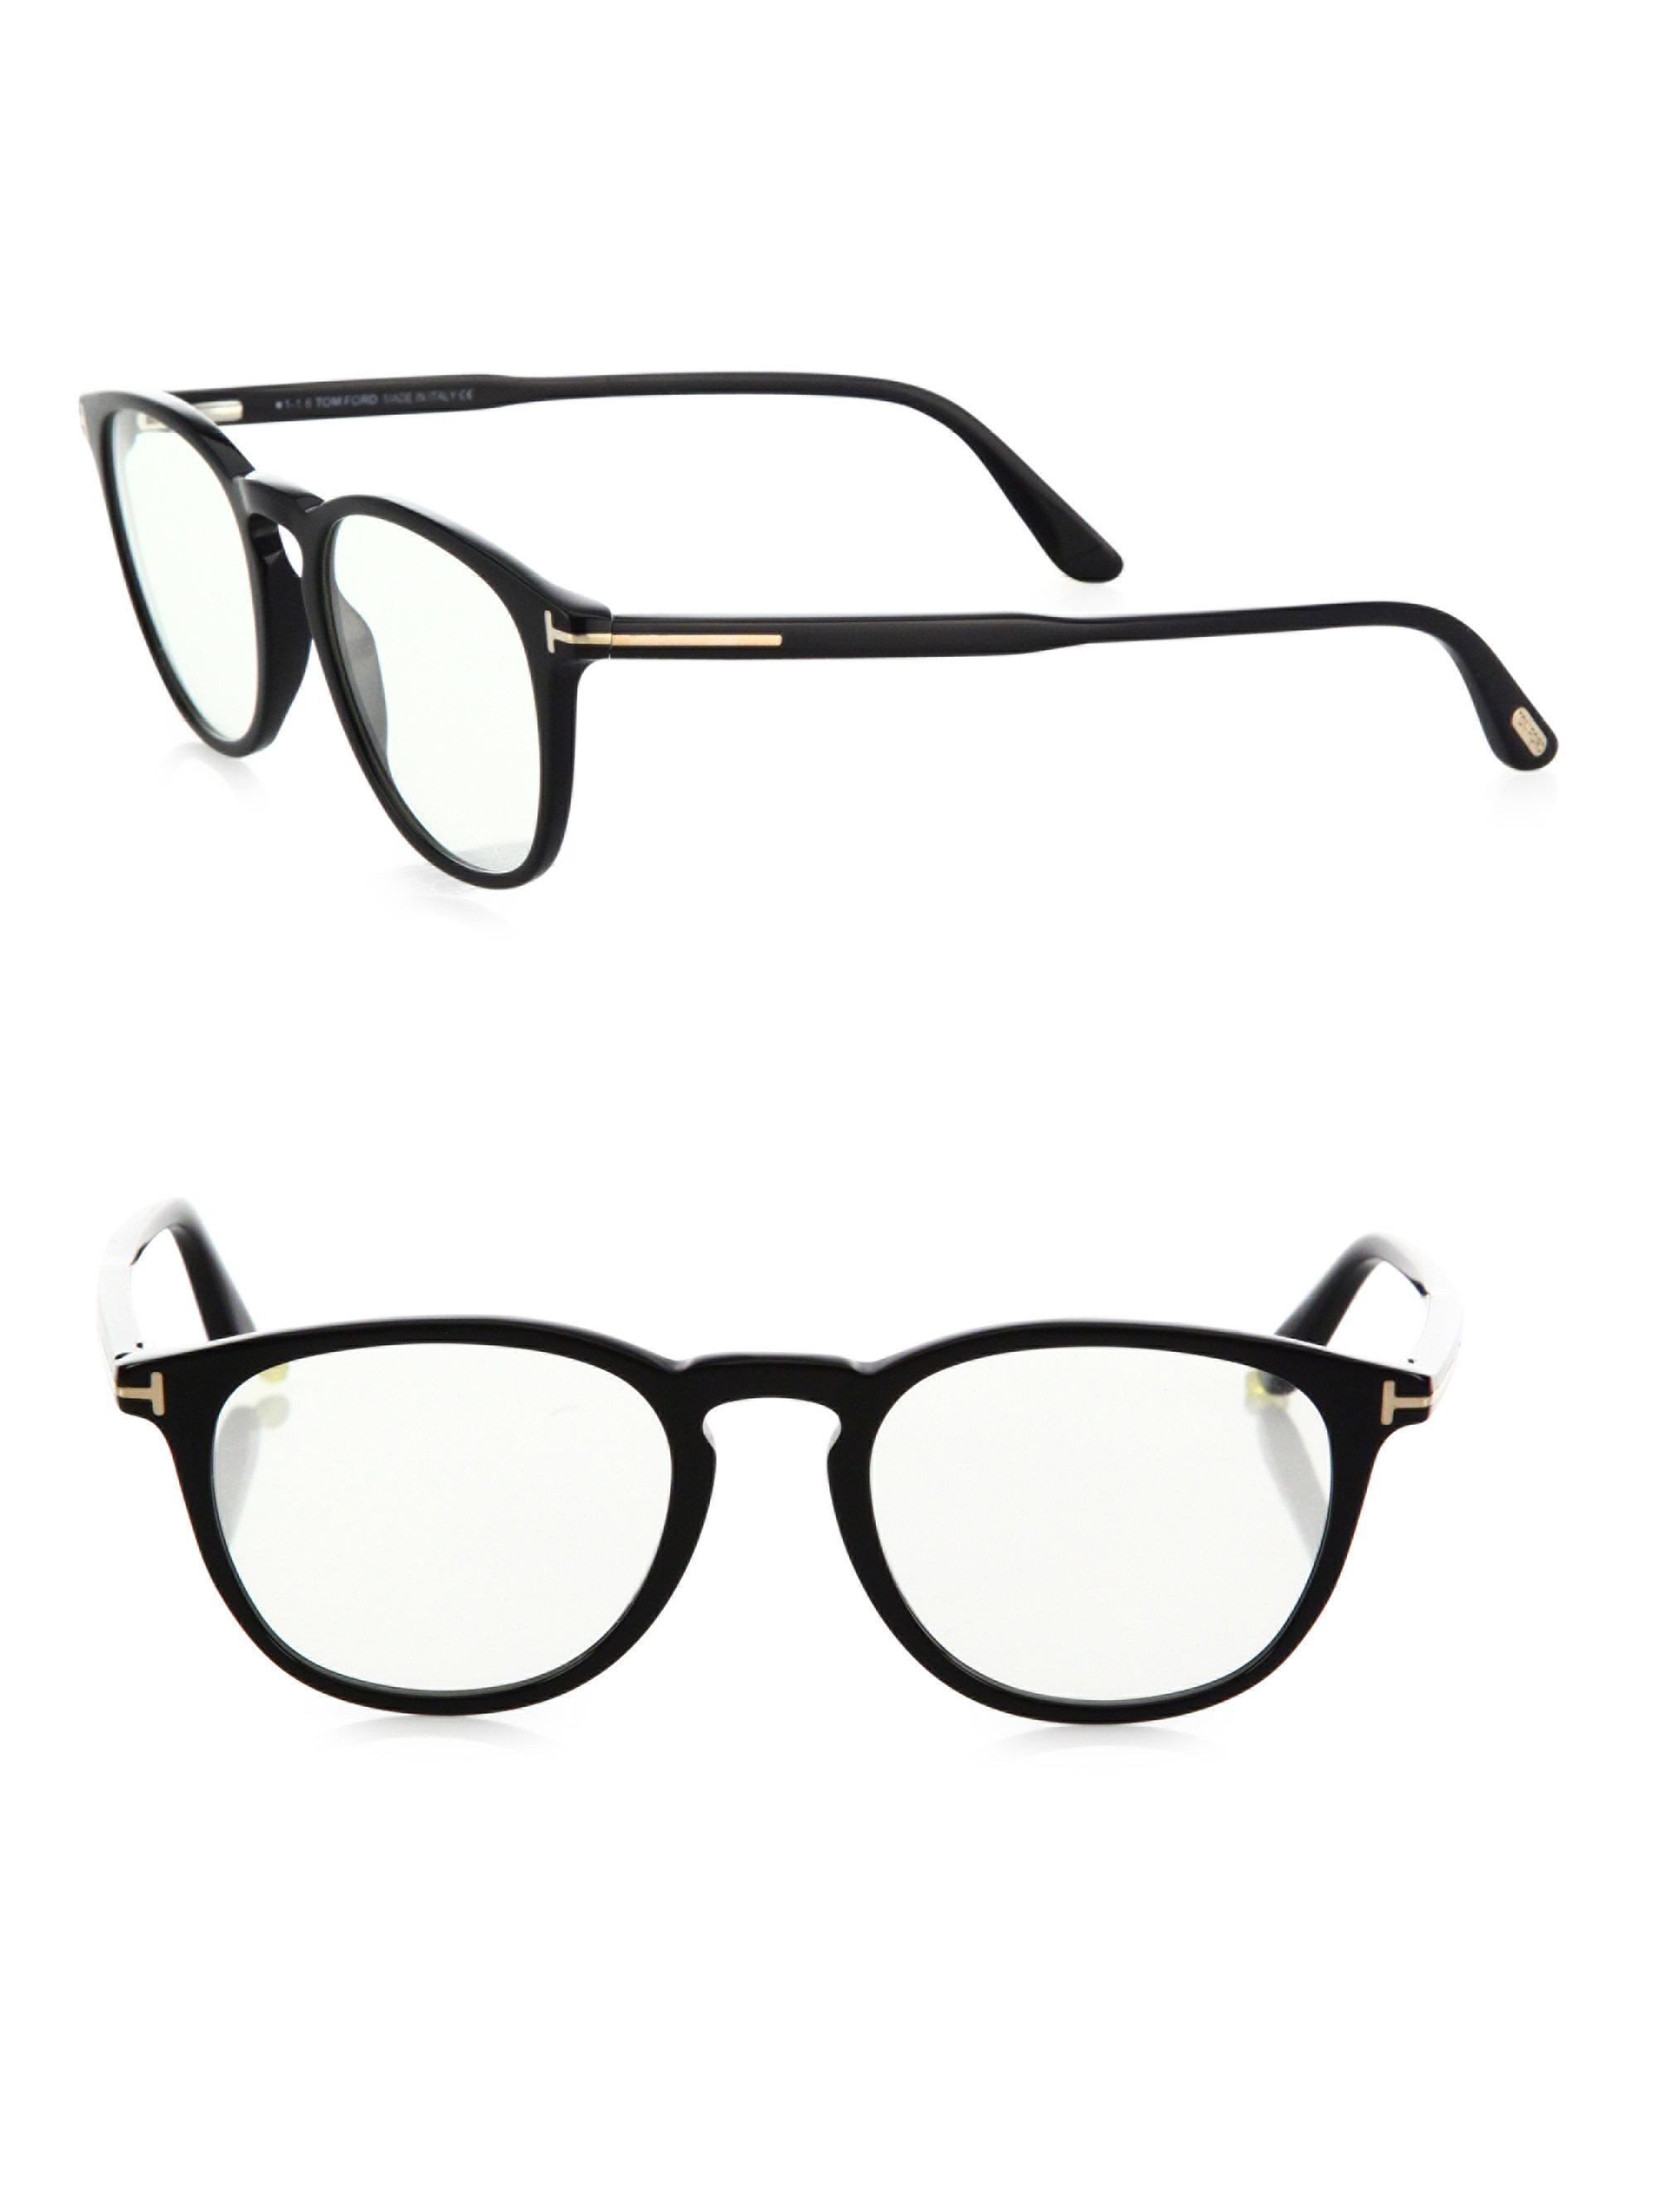 Lyst - Tom Ford 50mm Round Optical Glasses & Clip-on Sunglasses in Blue